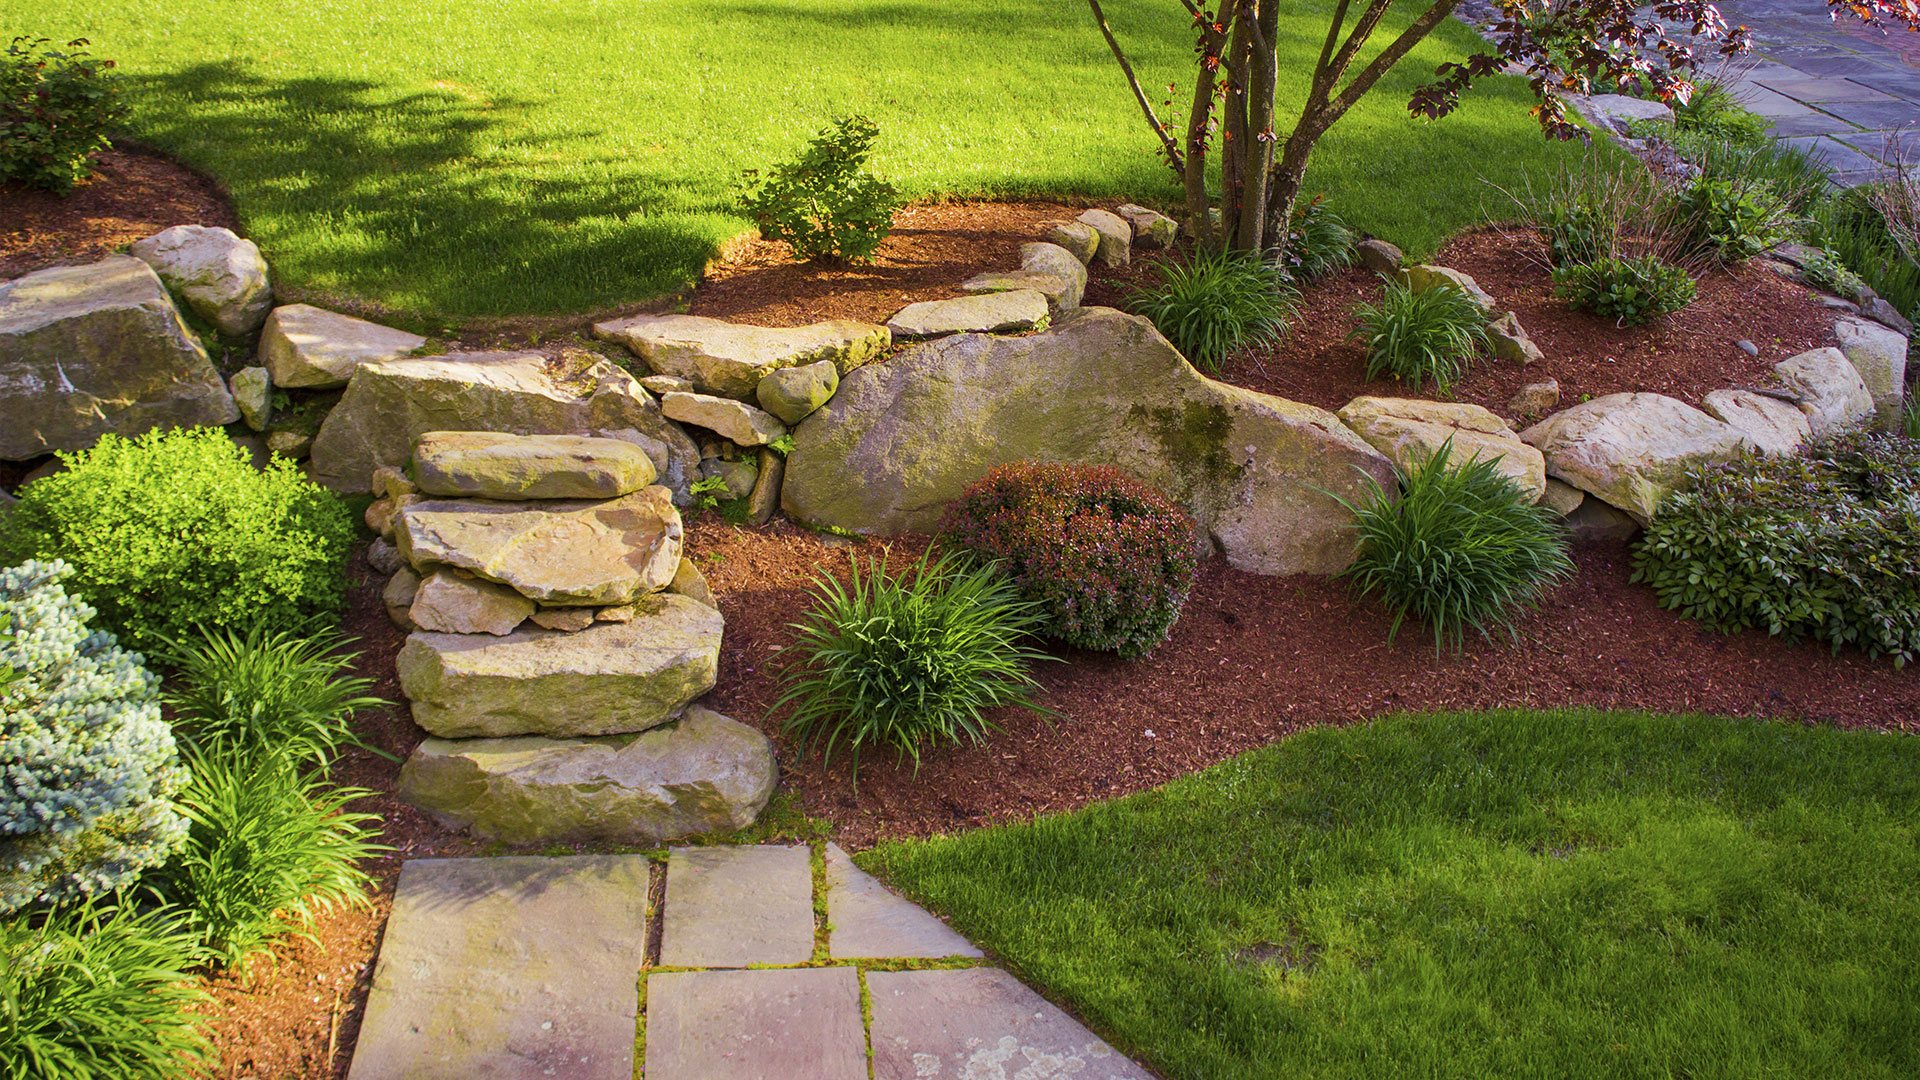 Transylvania Ltd Landscaping, Hardscaping and Remodeling slide 3